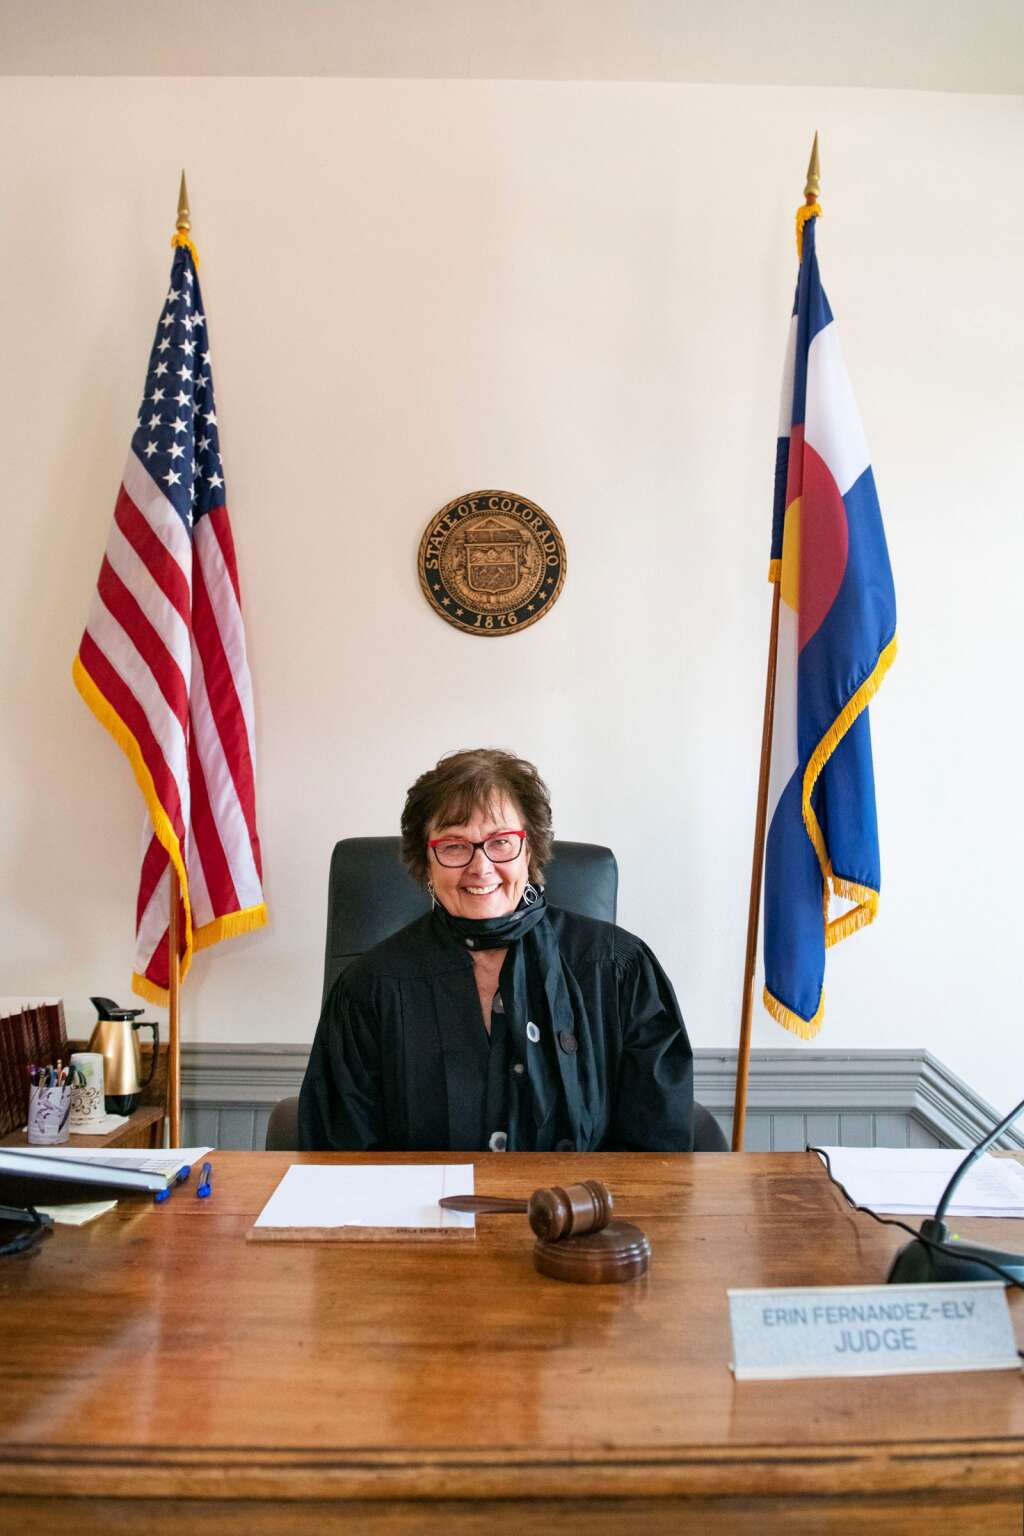 Pitkin County Judge Erin Fernandez-Ely sitting on the bench earlier this month. (Kelsey Brunner/The Aspen Times)